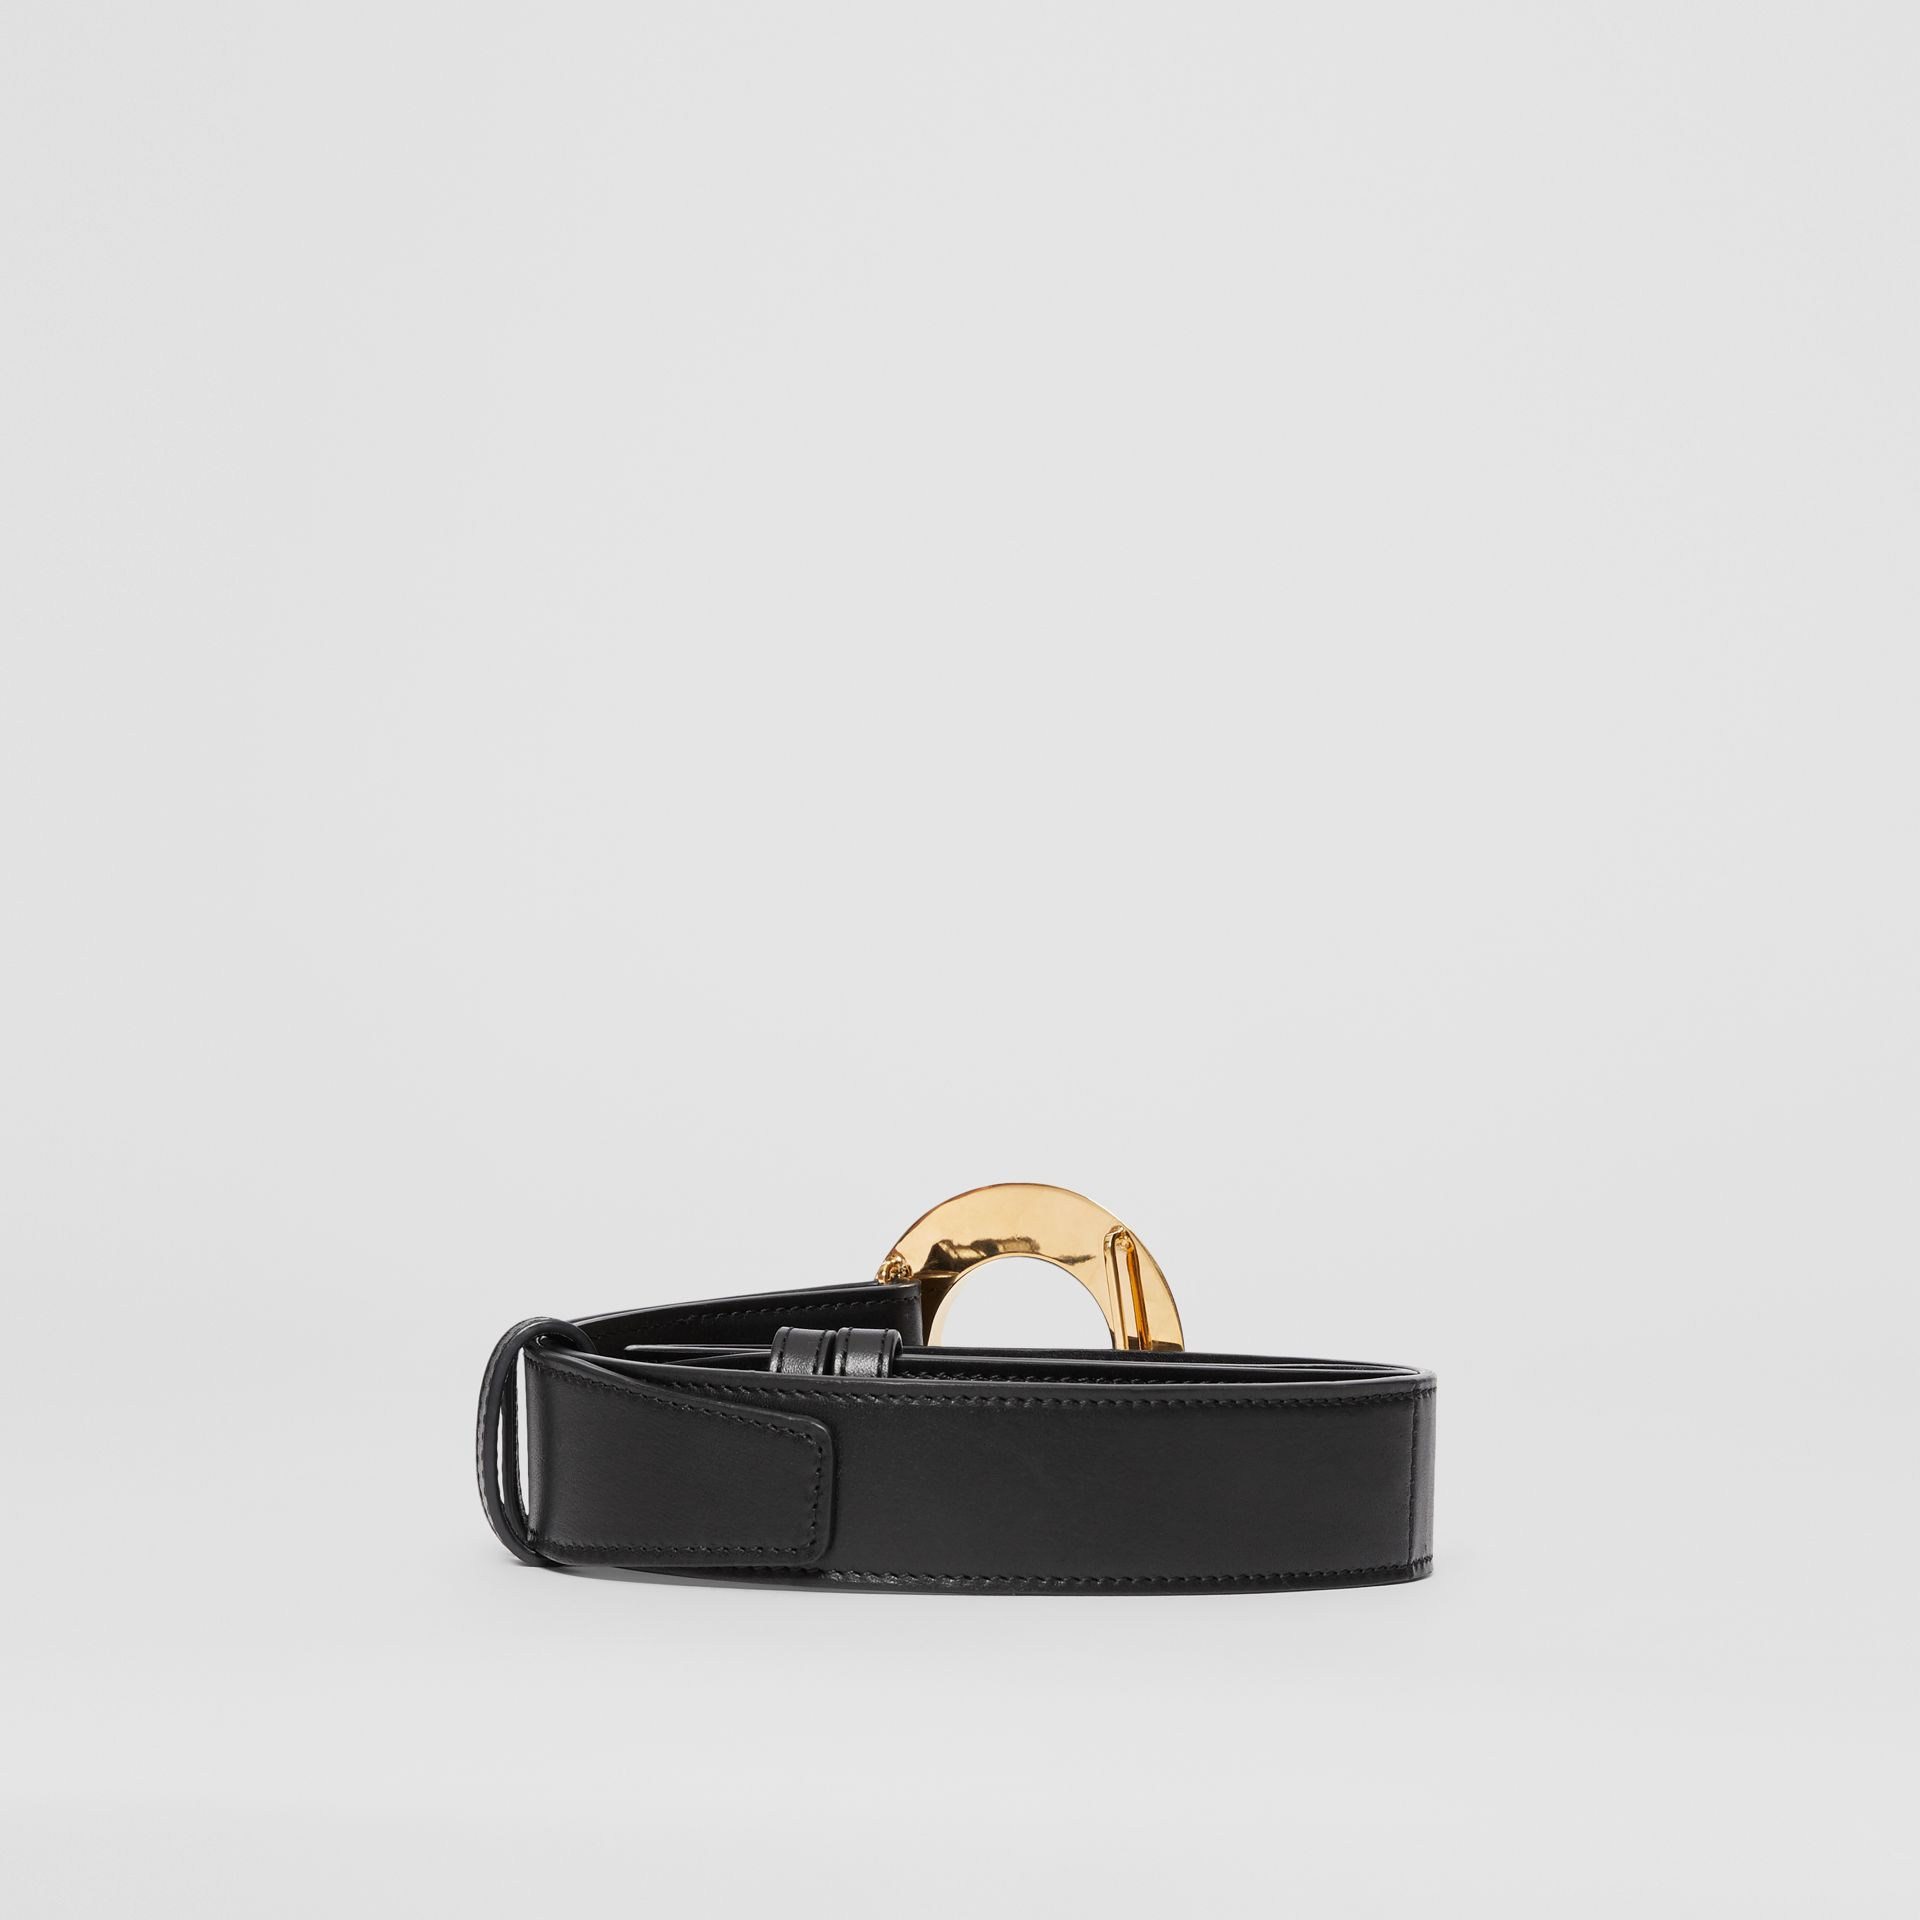 Porthole Buckle Leather Belt in Black - Women | Burberry - gallery image 4